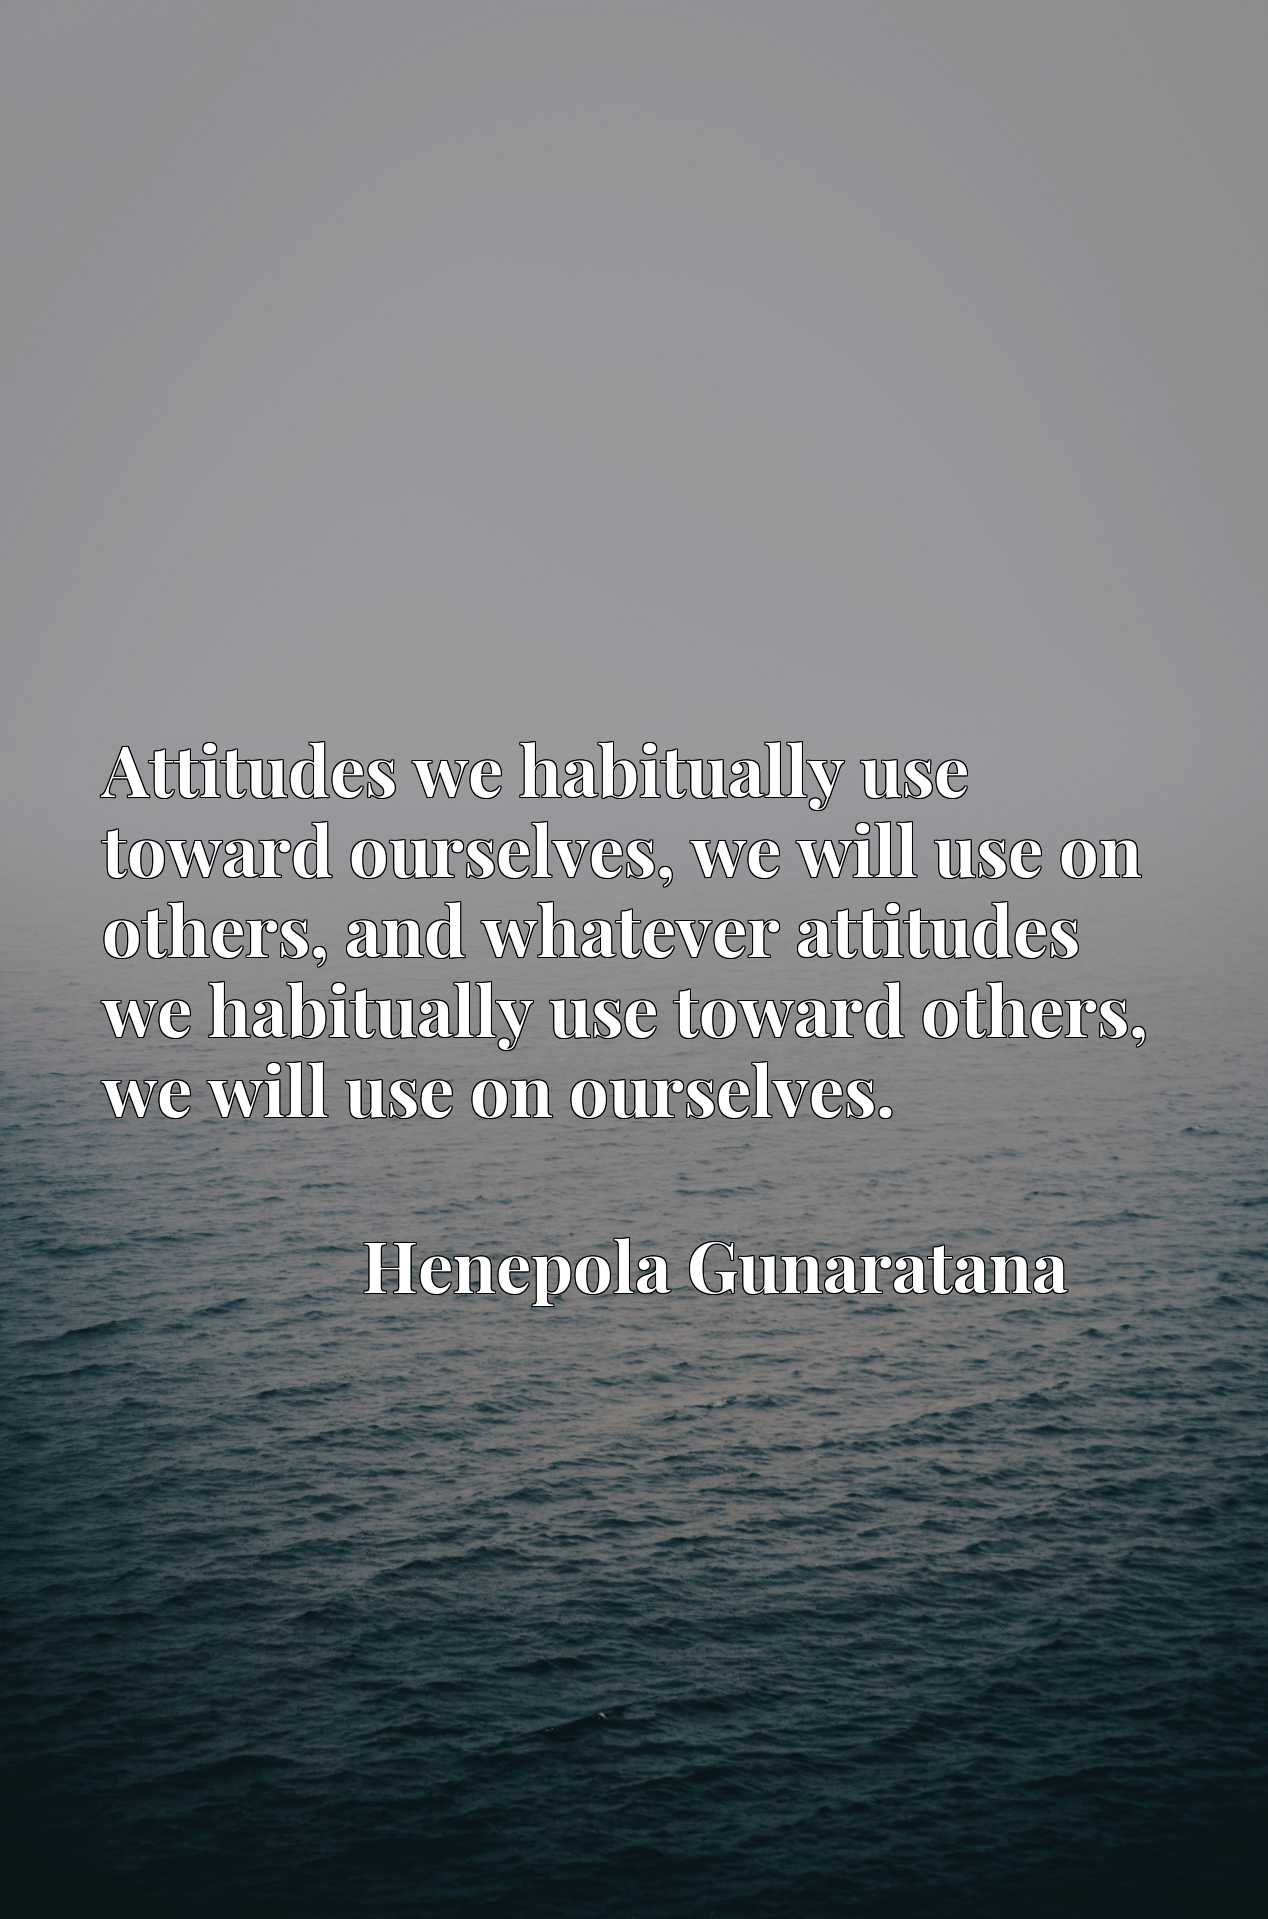 Attitudes we habitually use toward ourselves, we will use on others, and whatever attitudes we habitually use toward others, we will use on ourselves.